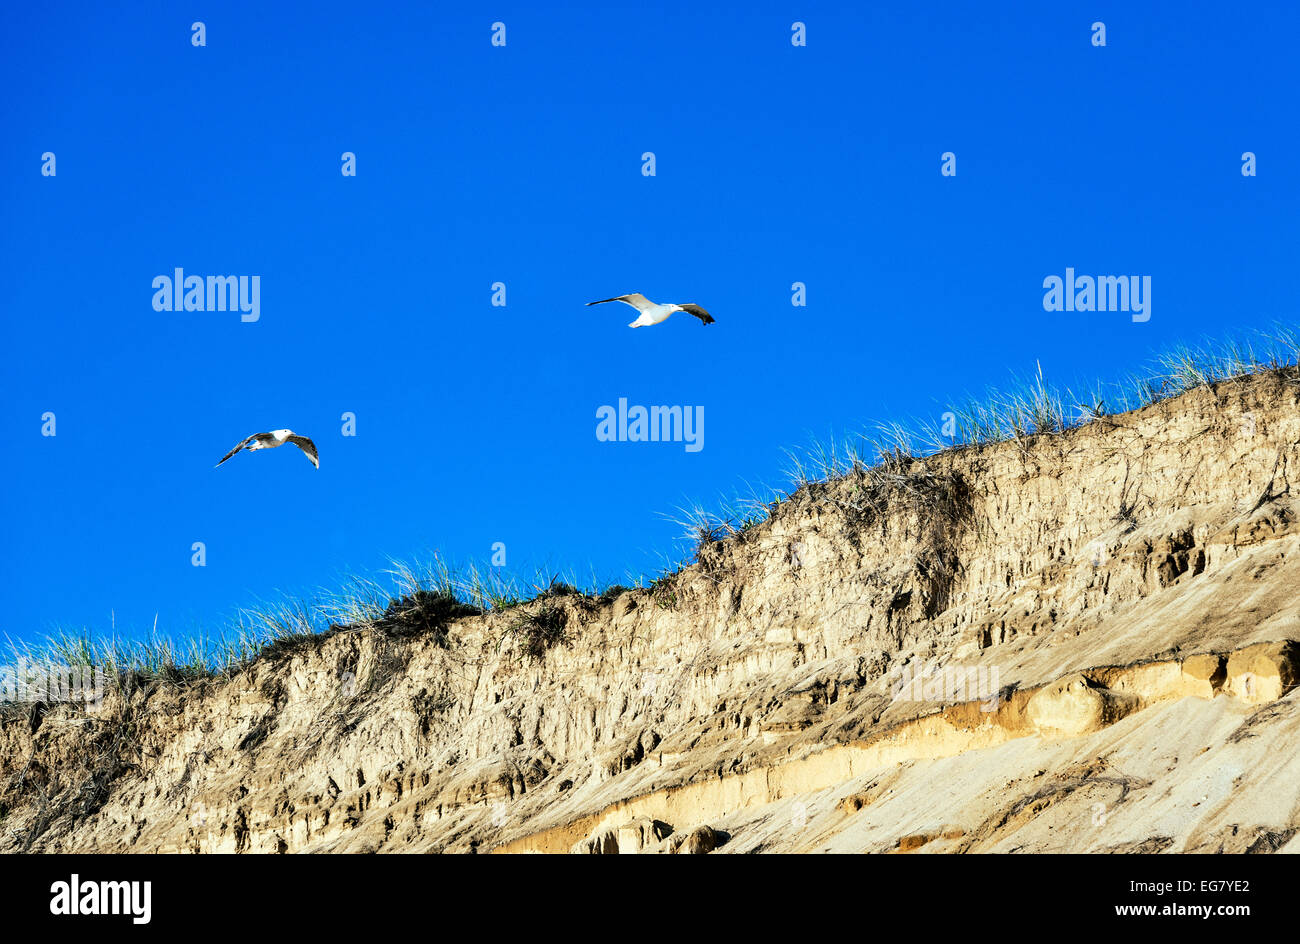 Seagulls soar over steep dune cliffs, Cape Cod National Seashore, Massachusetts, USA - Stock Image